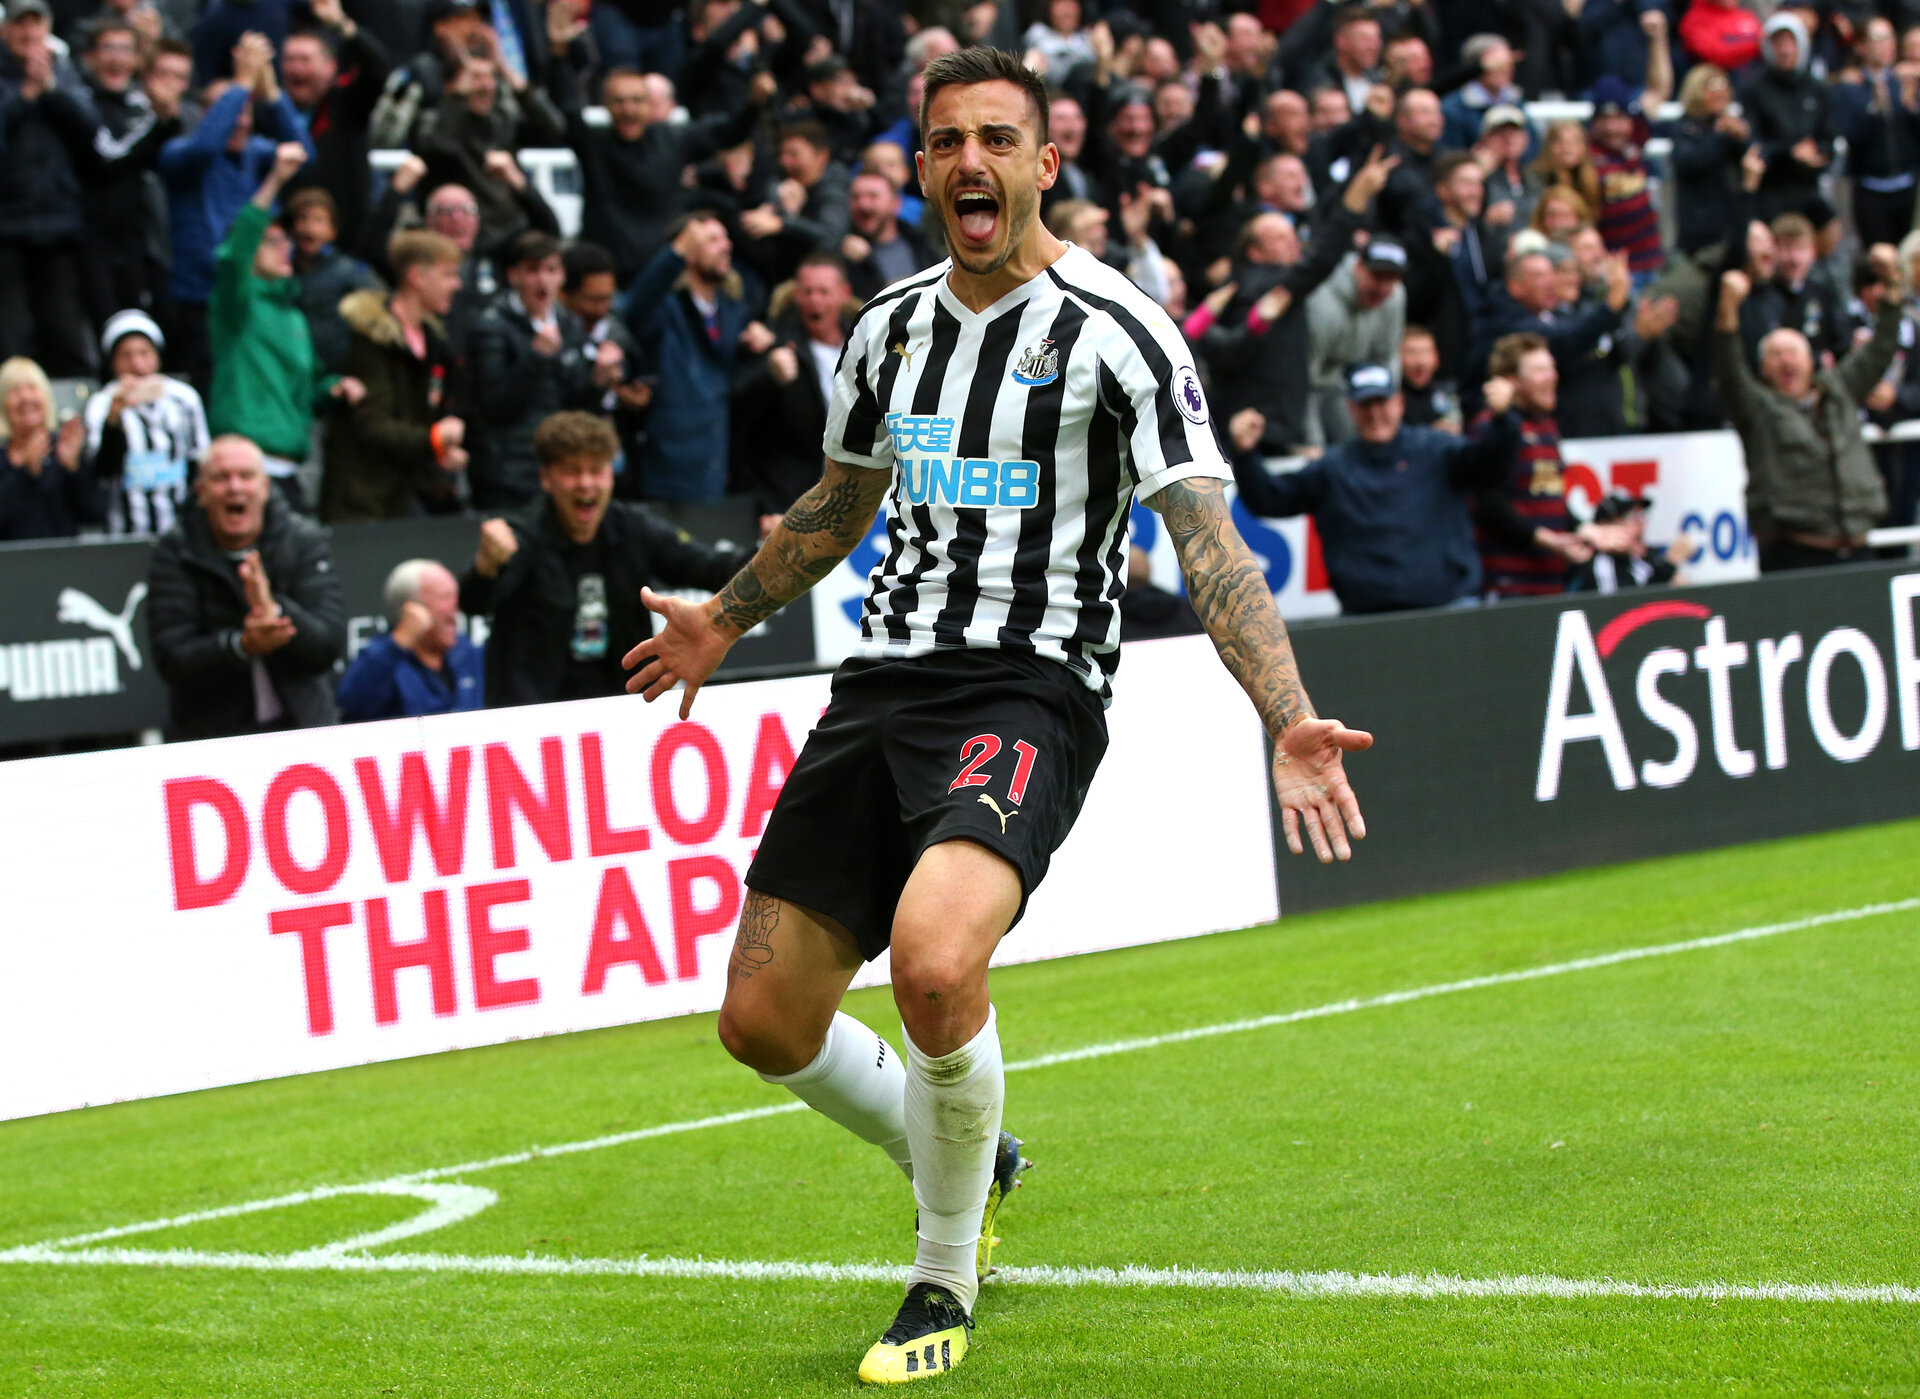 NEWCASTLE UPON TYNE, ENGLAND - AUGUST 26:  Joselu of Newcastle United celebrates after scoring his team's first goal during the Premier League match between Newcastle United and Chelsea FC at St. James Park on August 26, 2018 in Newcastle upon Tyne, United Kingdom.  (Photo by Alex Livesey/Getty Images)